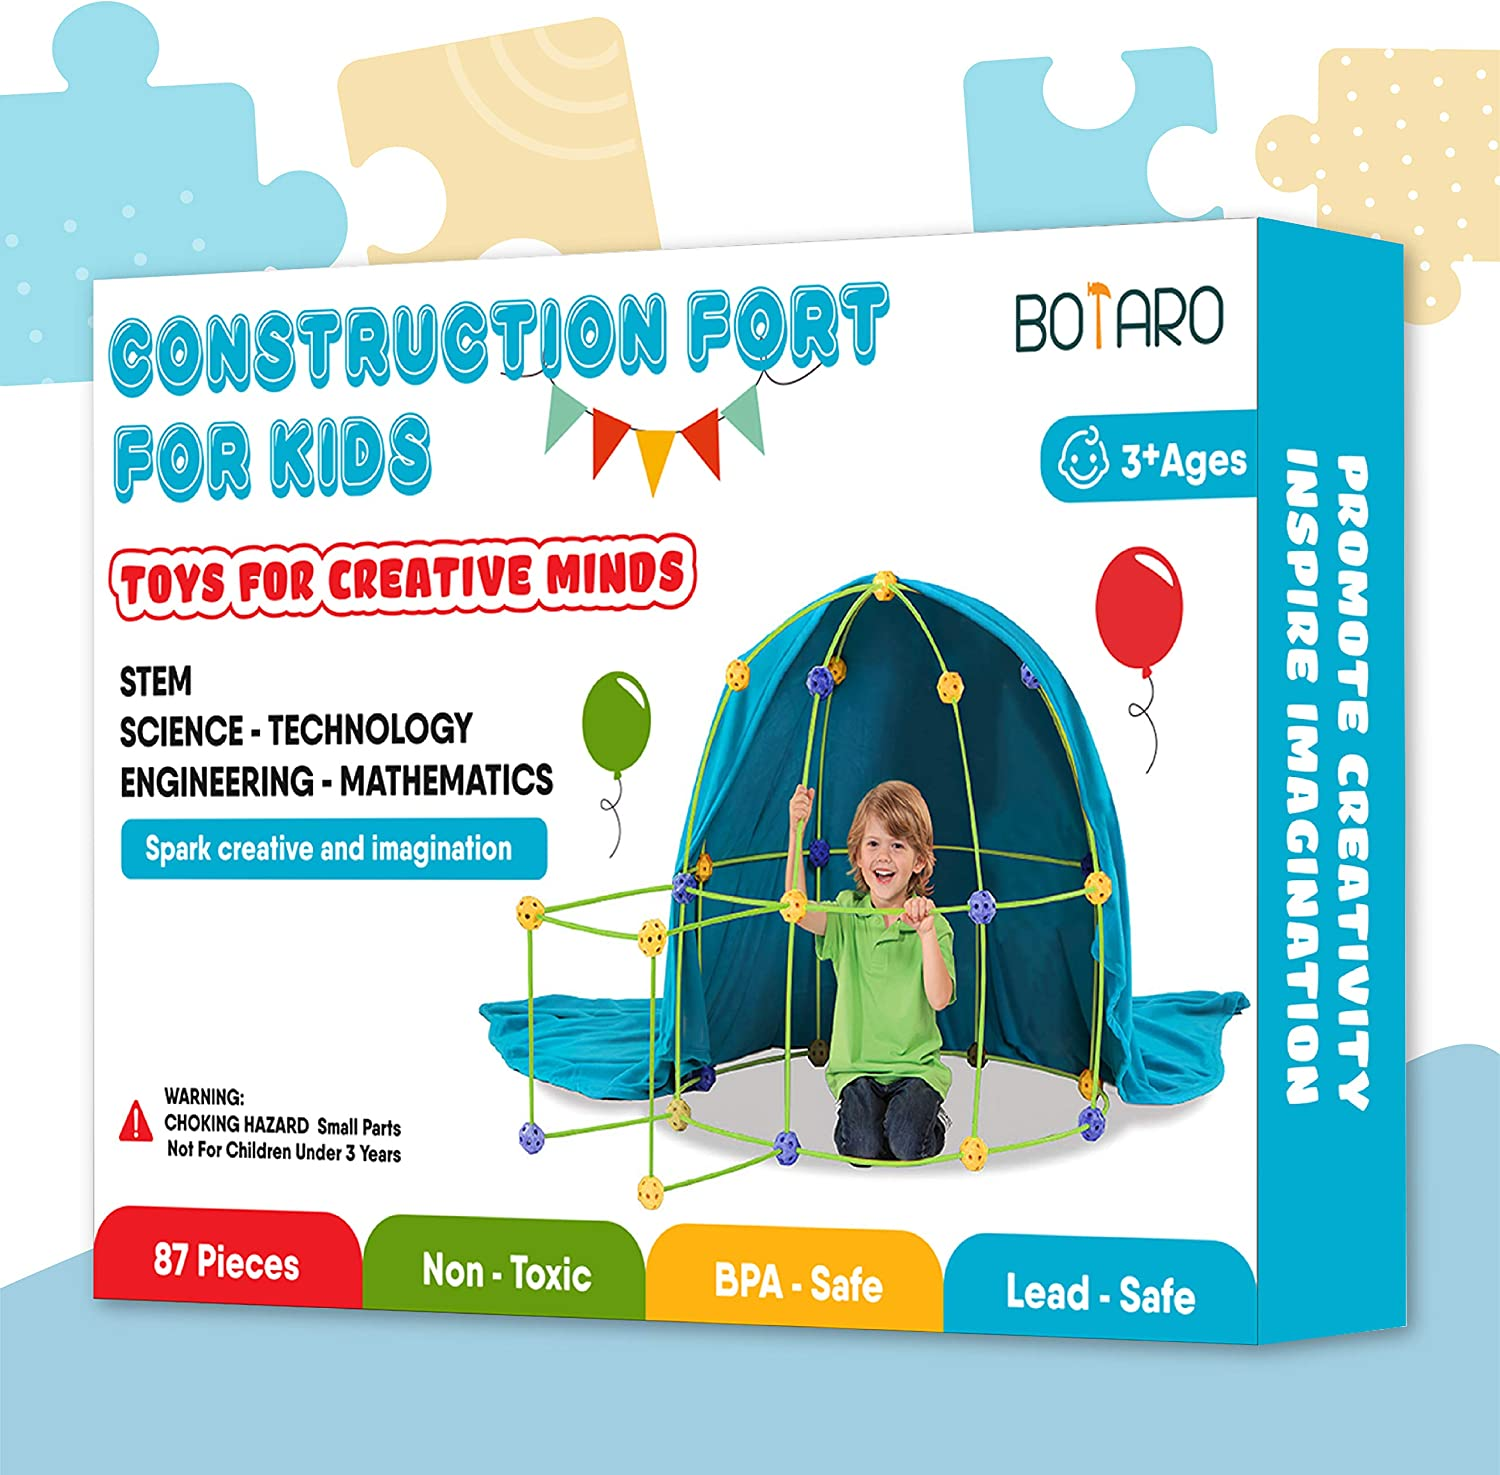 BOTARO Fort Building Kits for Kids Tiny Land 87 Pieces Creative Fort Toy for 3 Learning Toys DIY Building Castle Tunnel Play Tent Indoor /& Outdoor Years Old Boy /& Girls Blanket Included